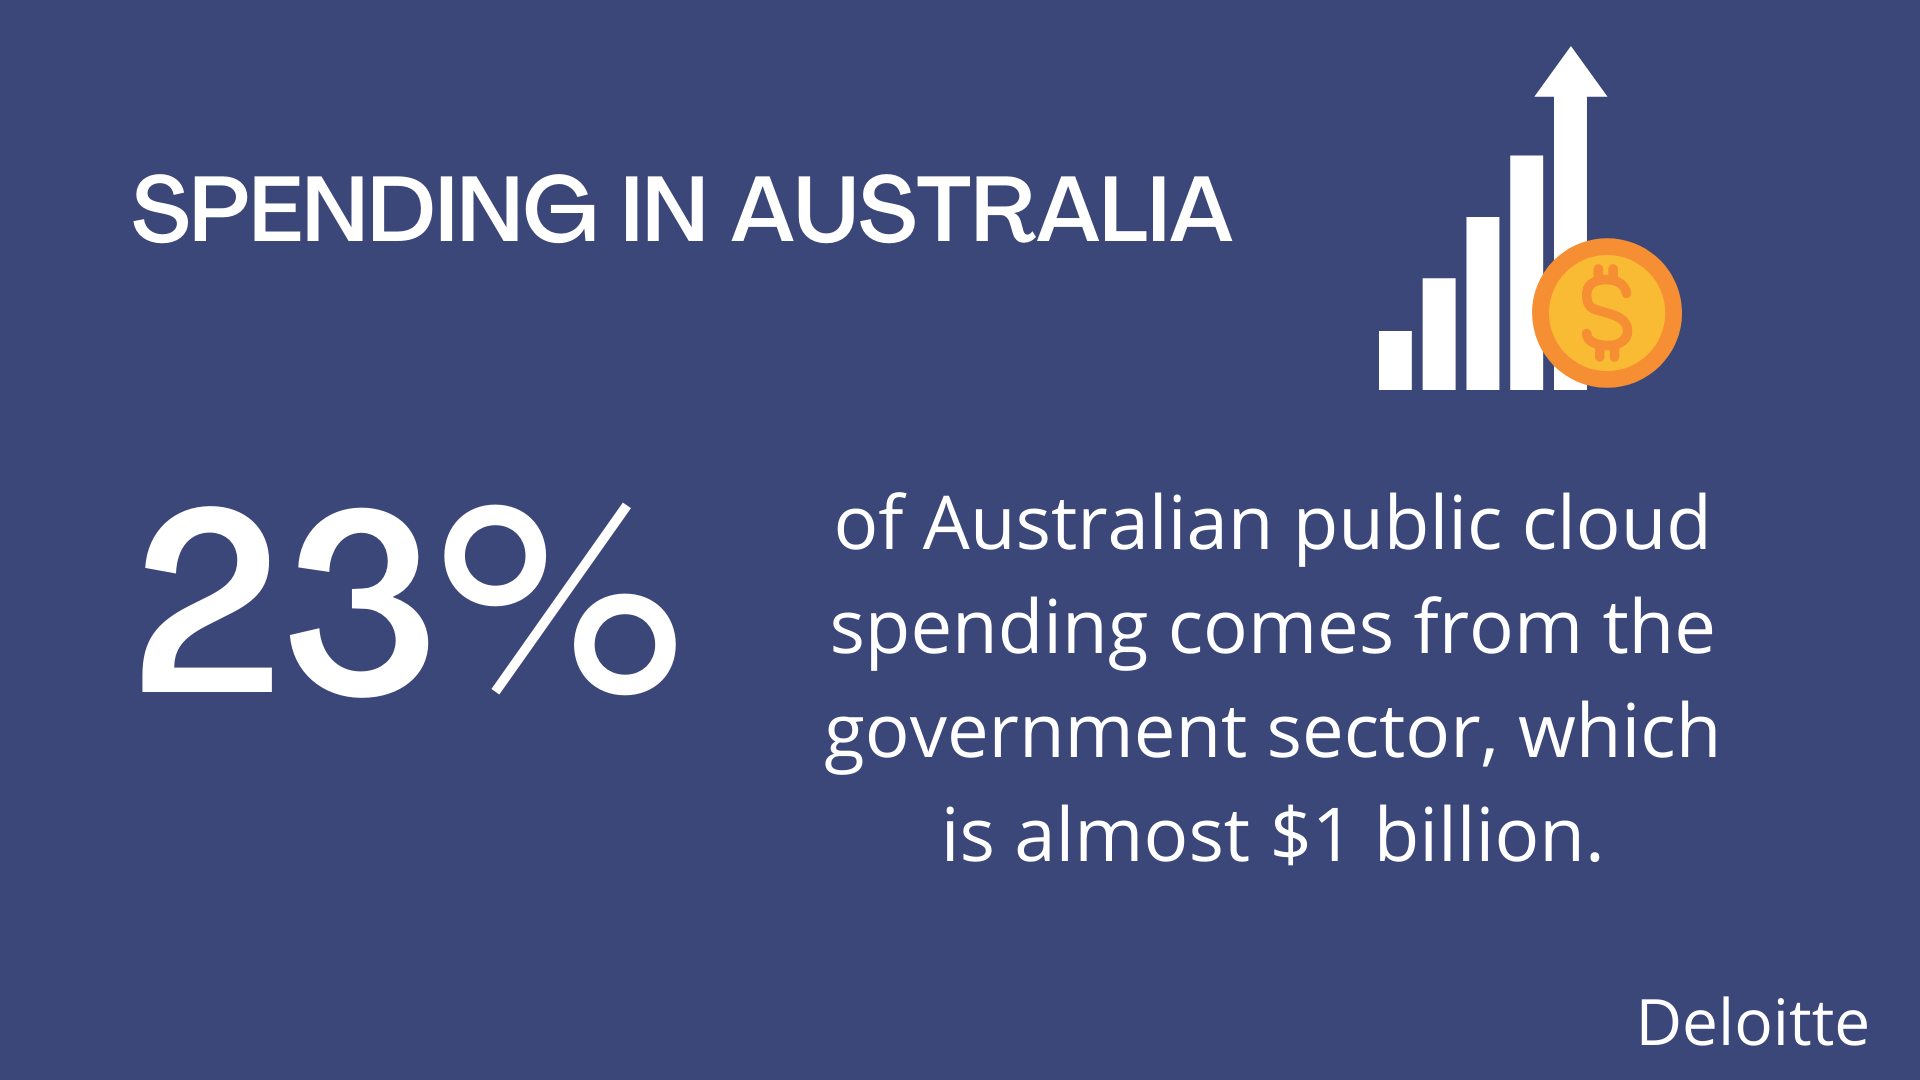 23% of Australian public cloud spending comes from the government sector, which is almost $1 billion.